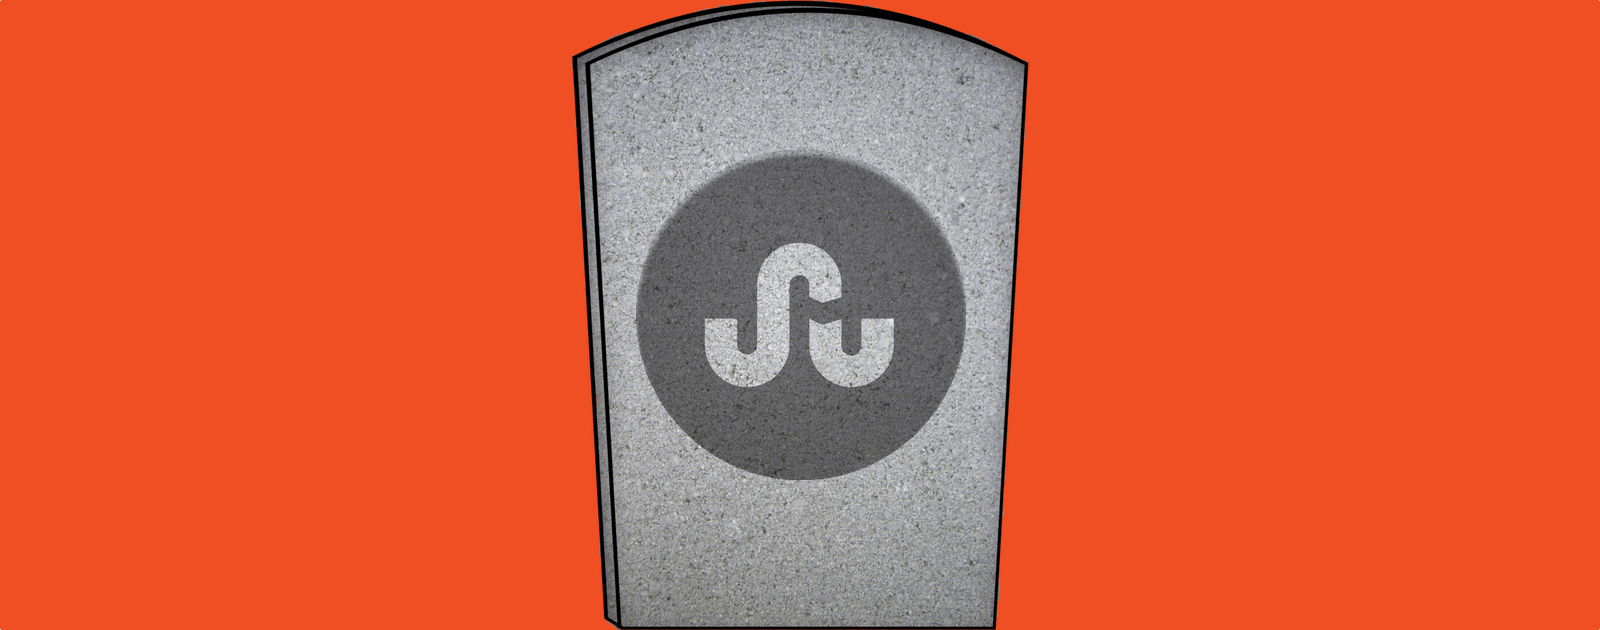 RIP StumbleUpon: Say Goodbye to my Little Friend